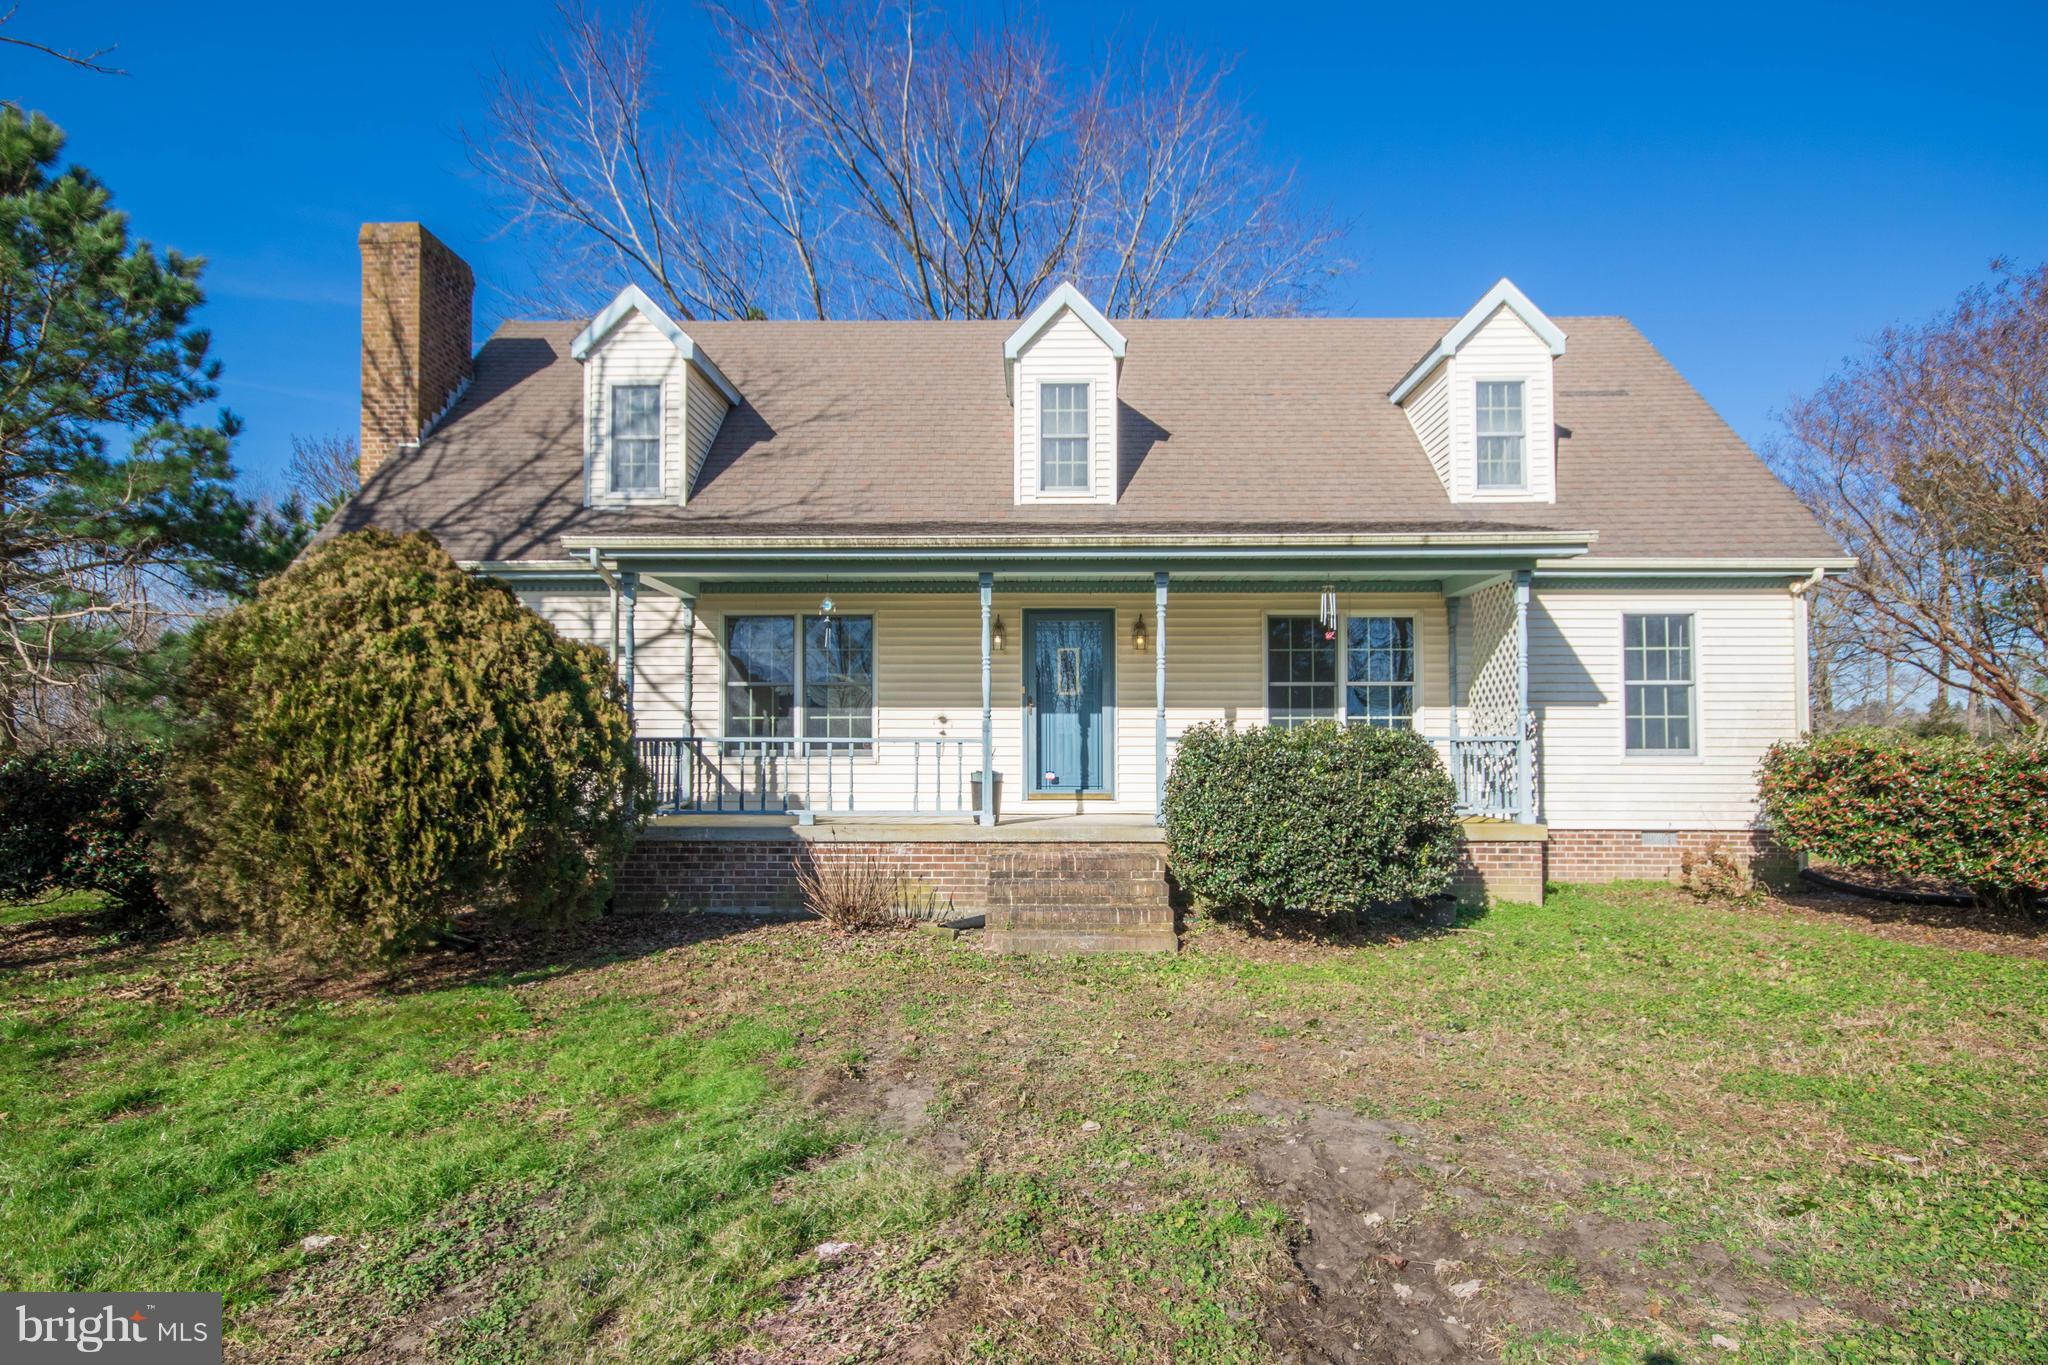 6130 CRISFIELD HIGHWAY, MARION STATION, MD 21838